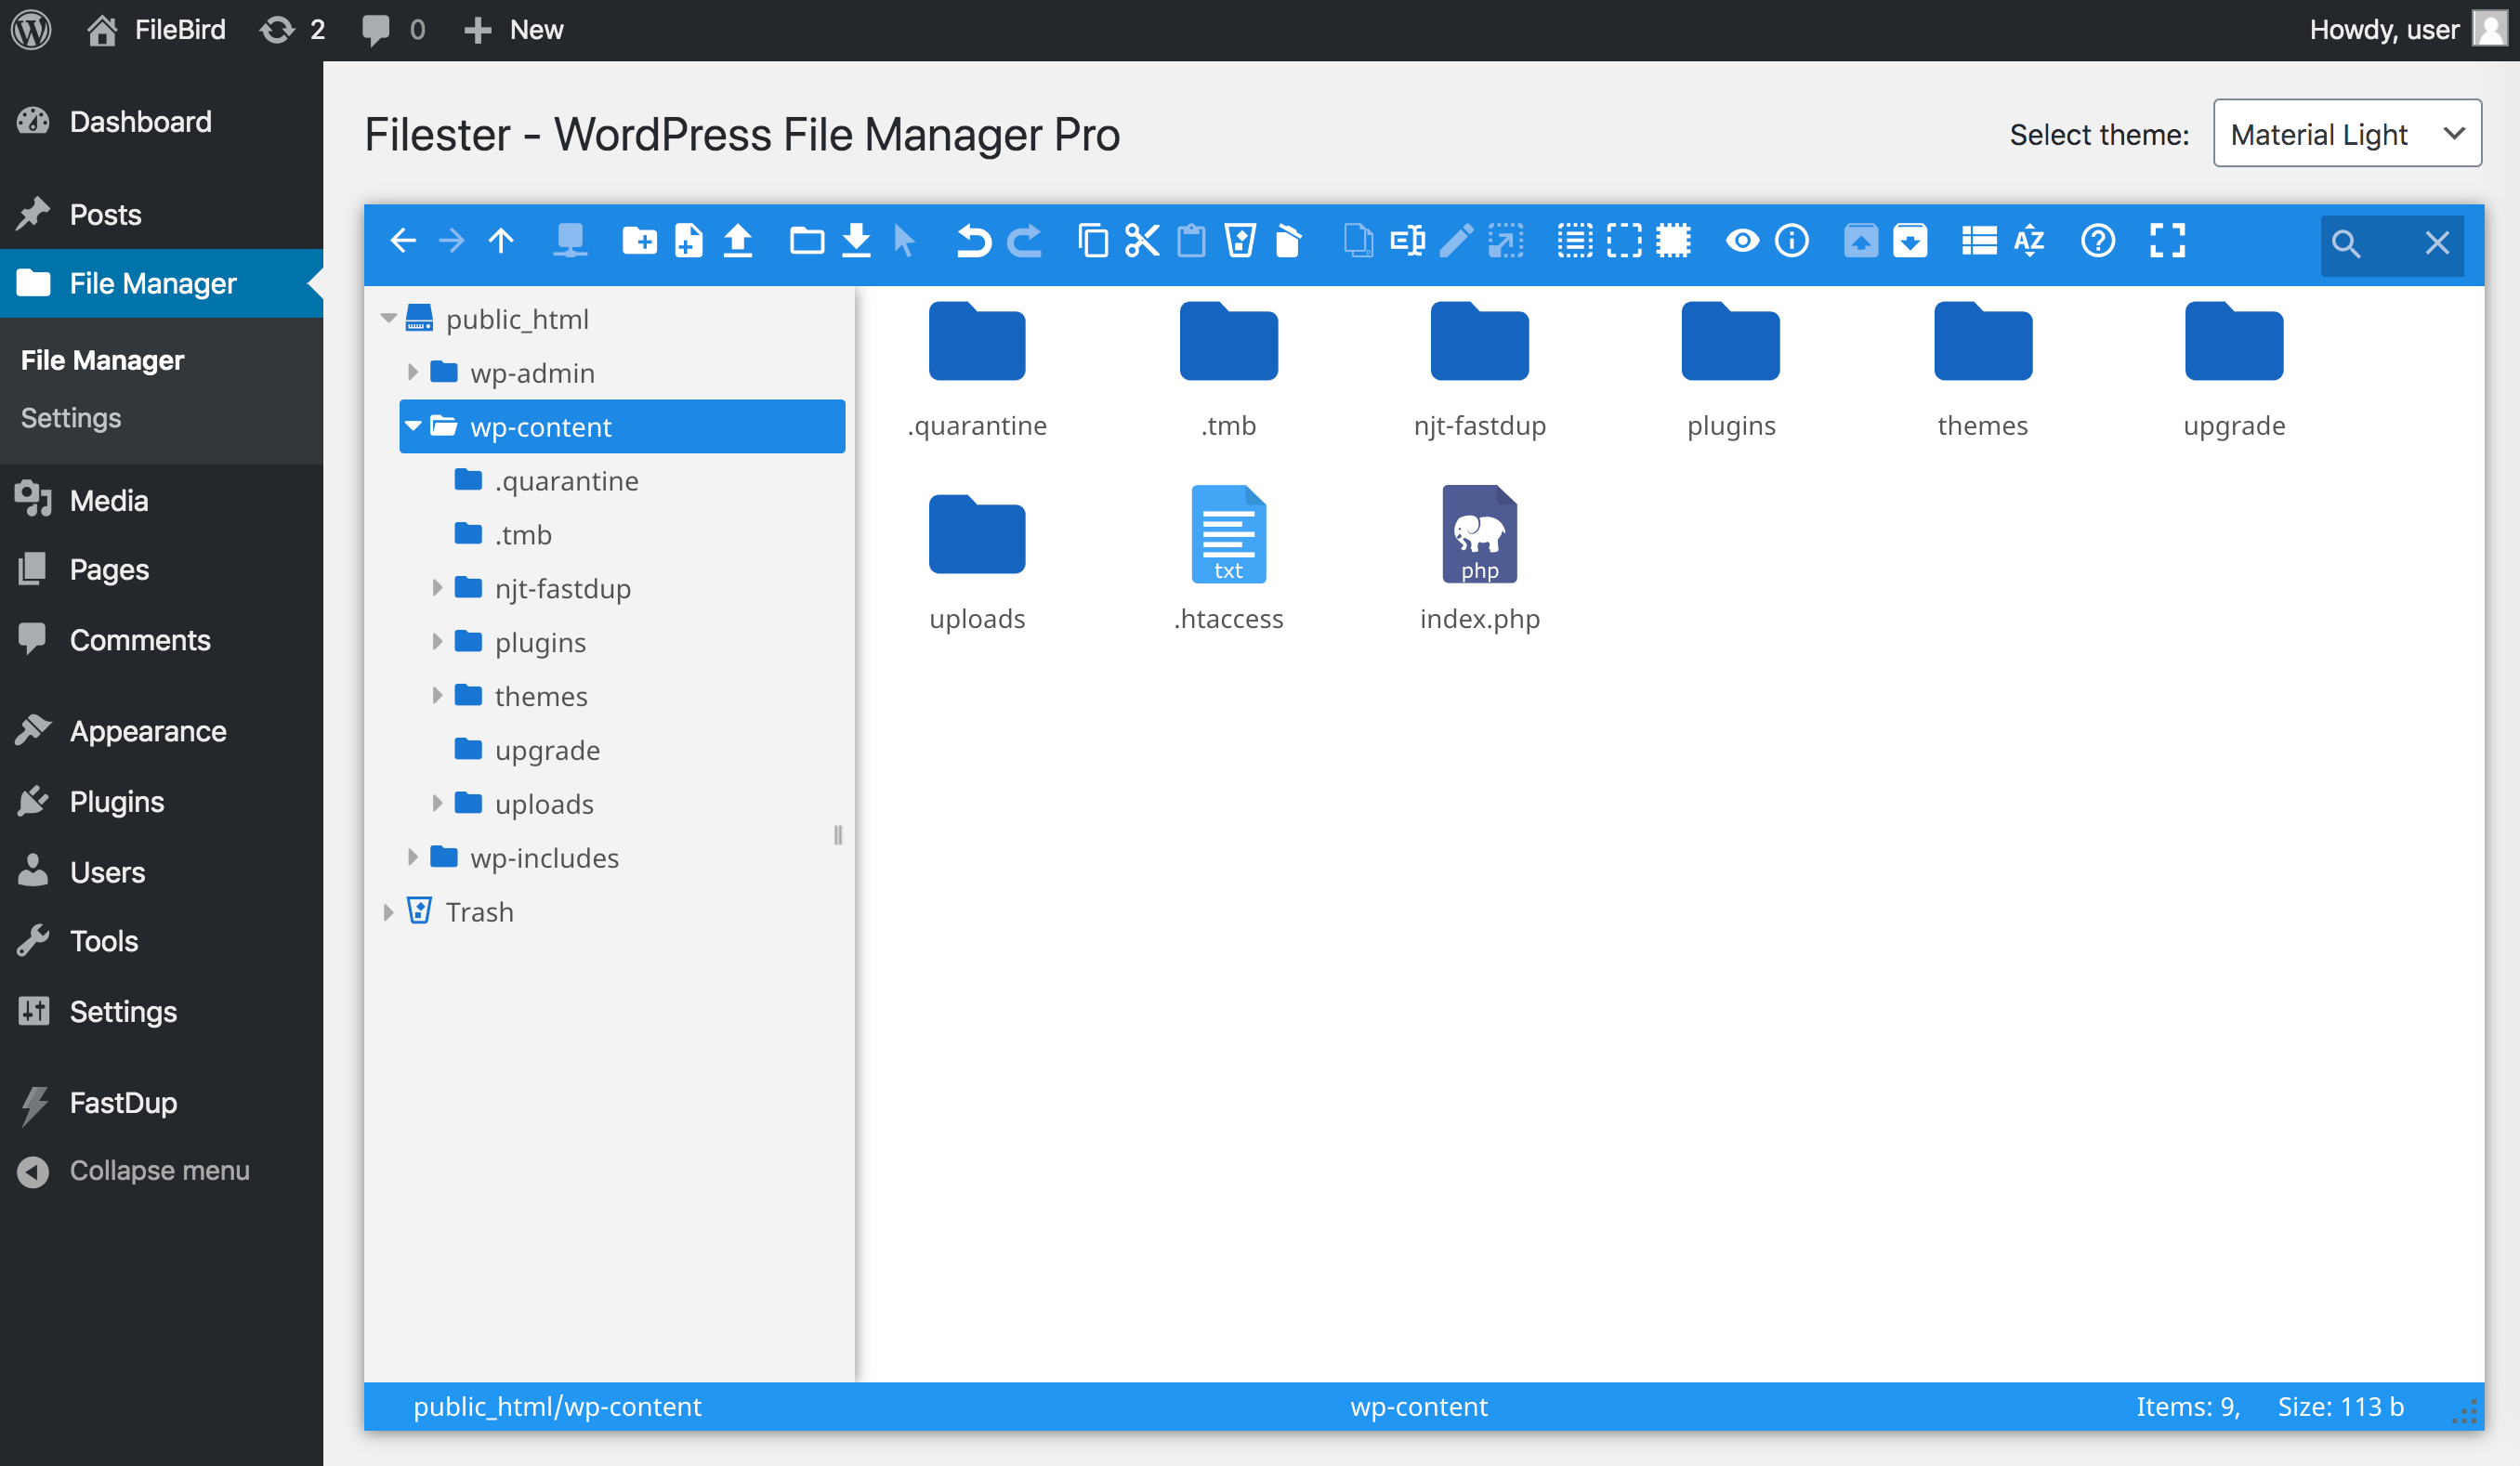 Filester file manager pro user interface